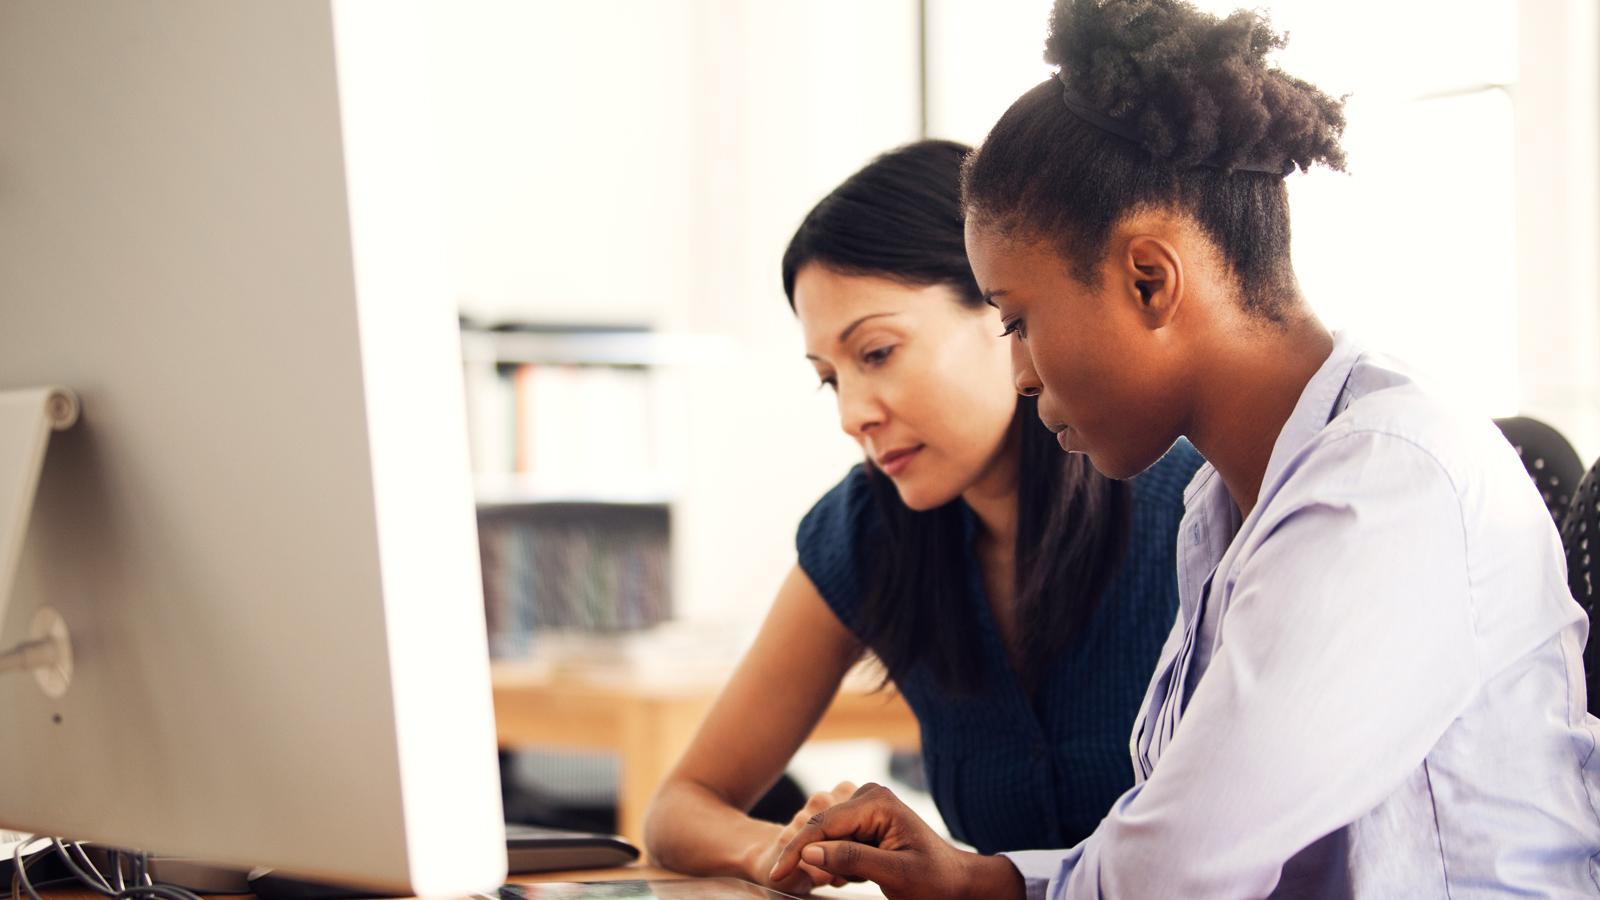 Two women sit in front of a computer and discuss content on screen.